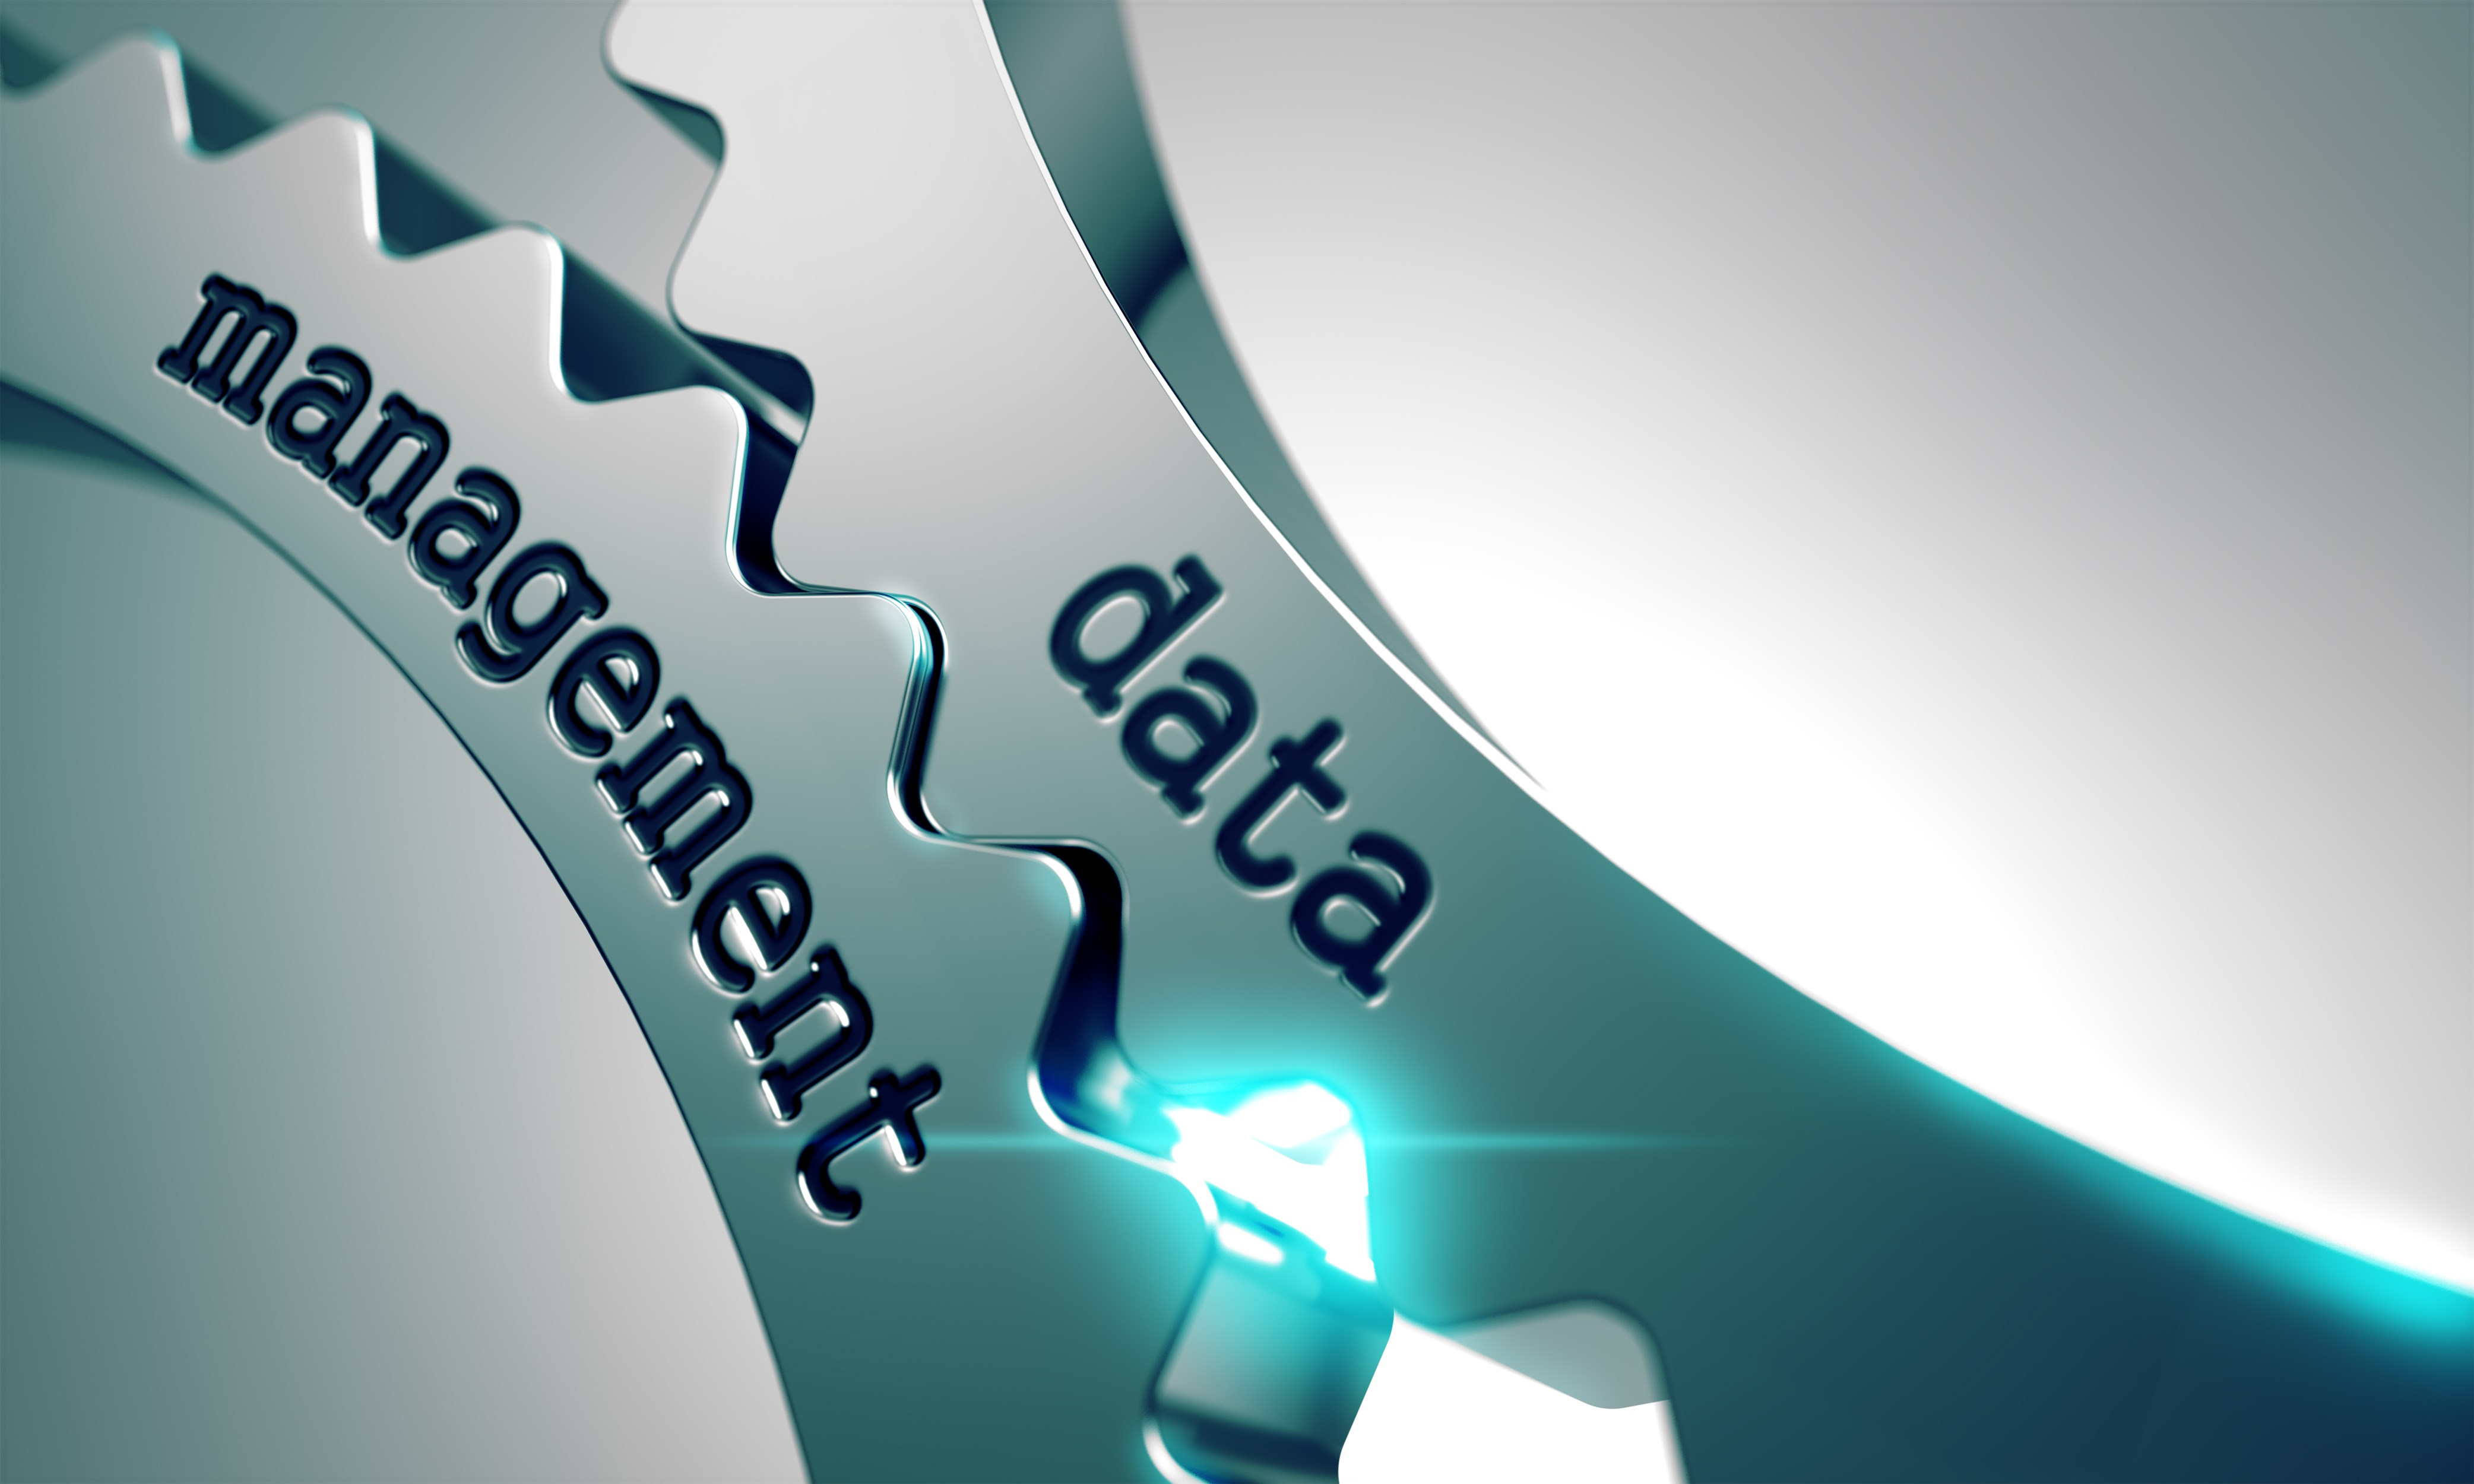 data management platforms drive activation of data for real results